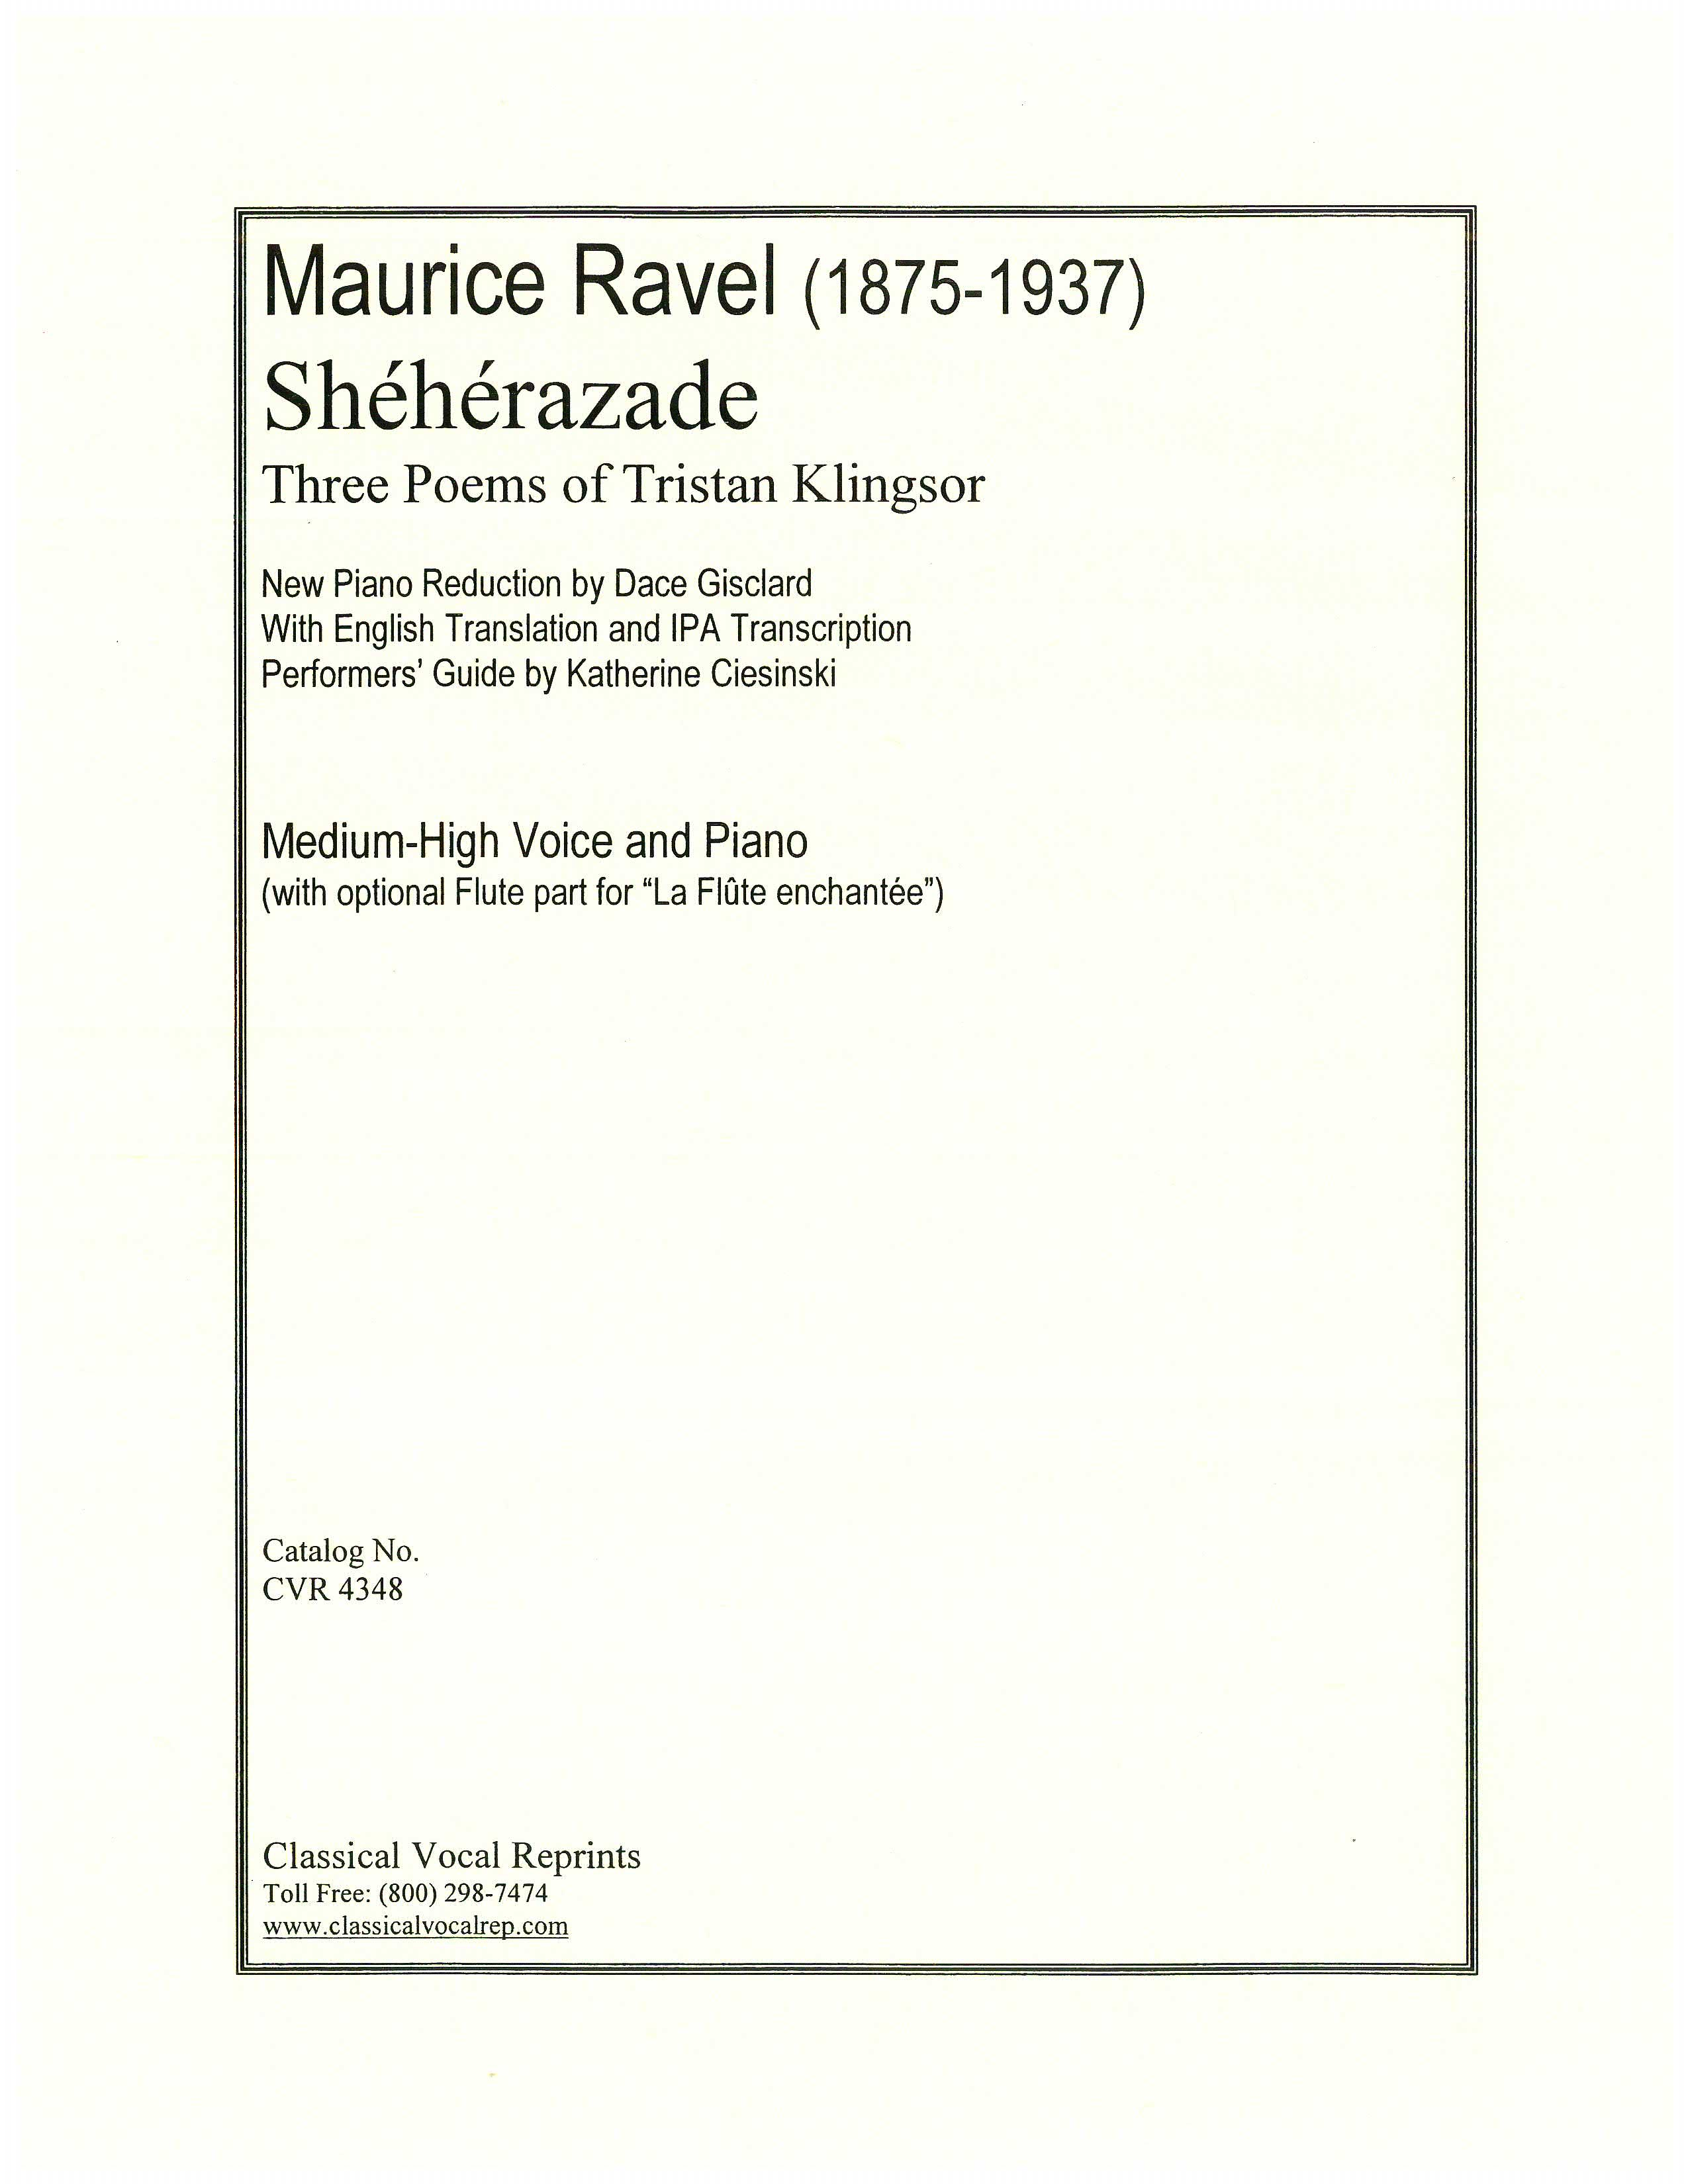 Classical Vocal Reprints - Product Page - Sheet Music PDF